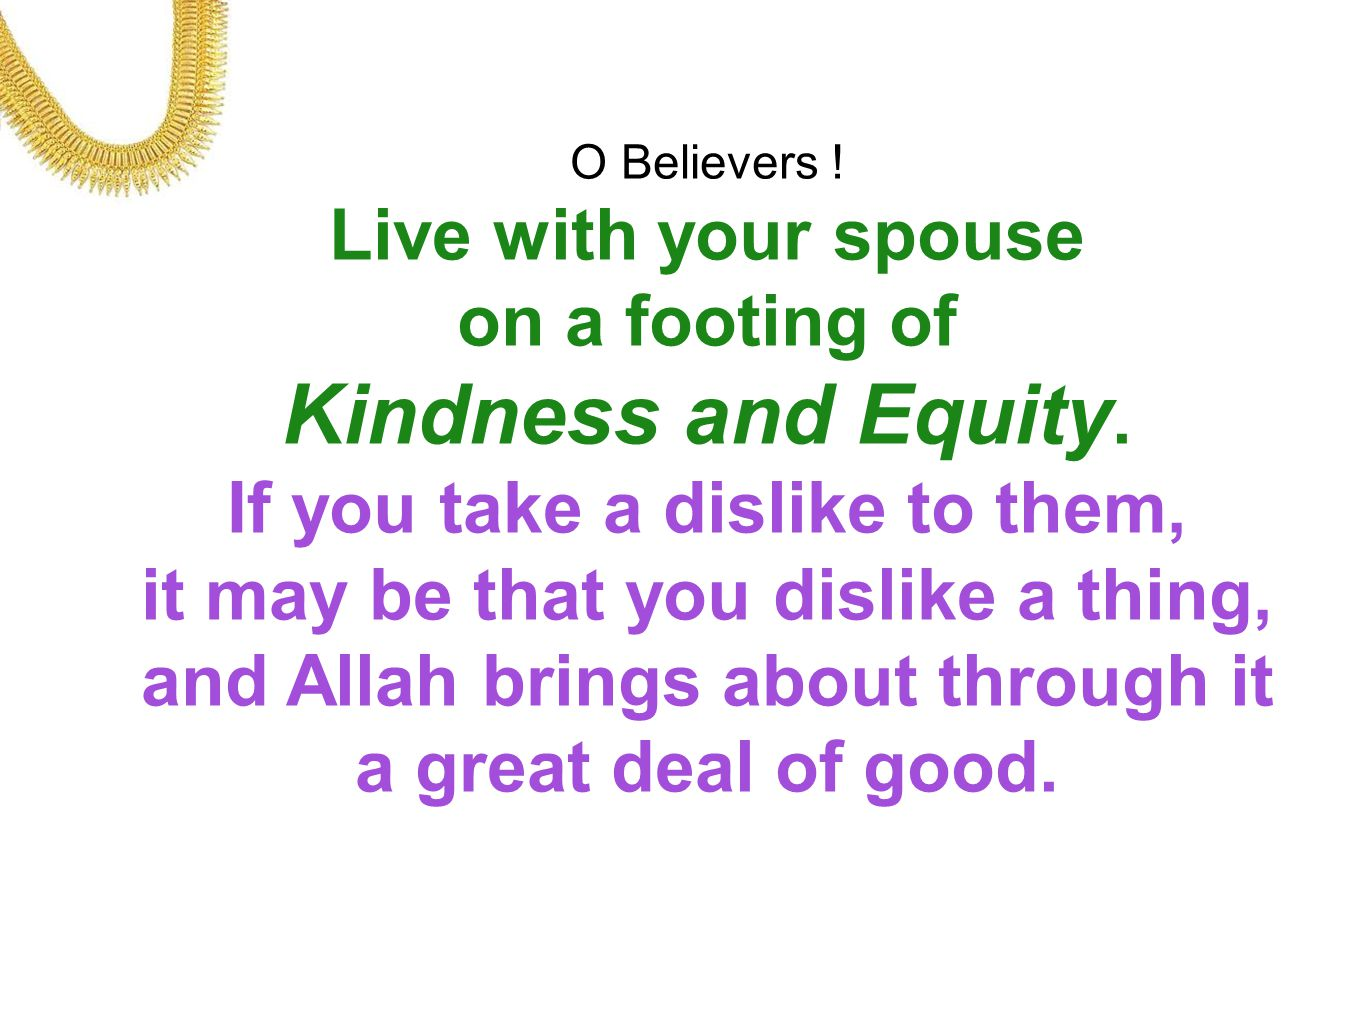 Kindness and Equity. Live with your spouse on a footing of